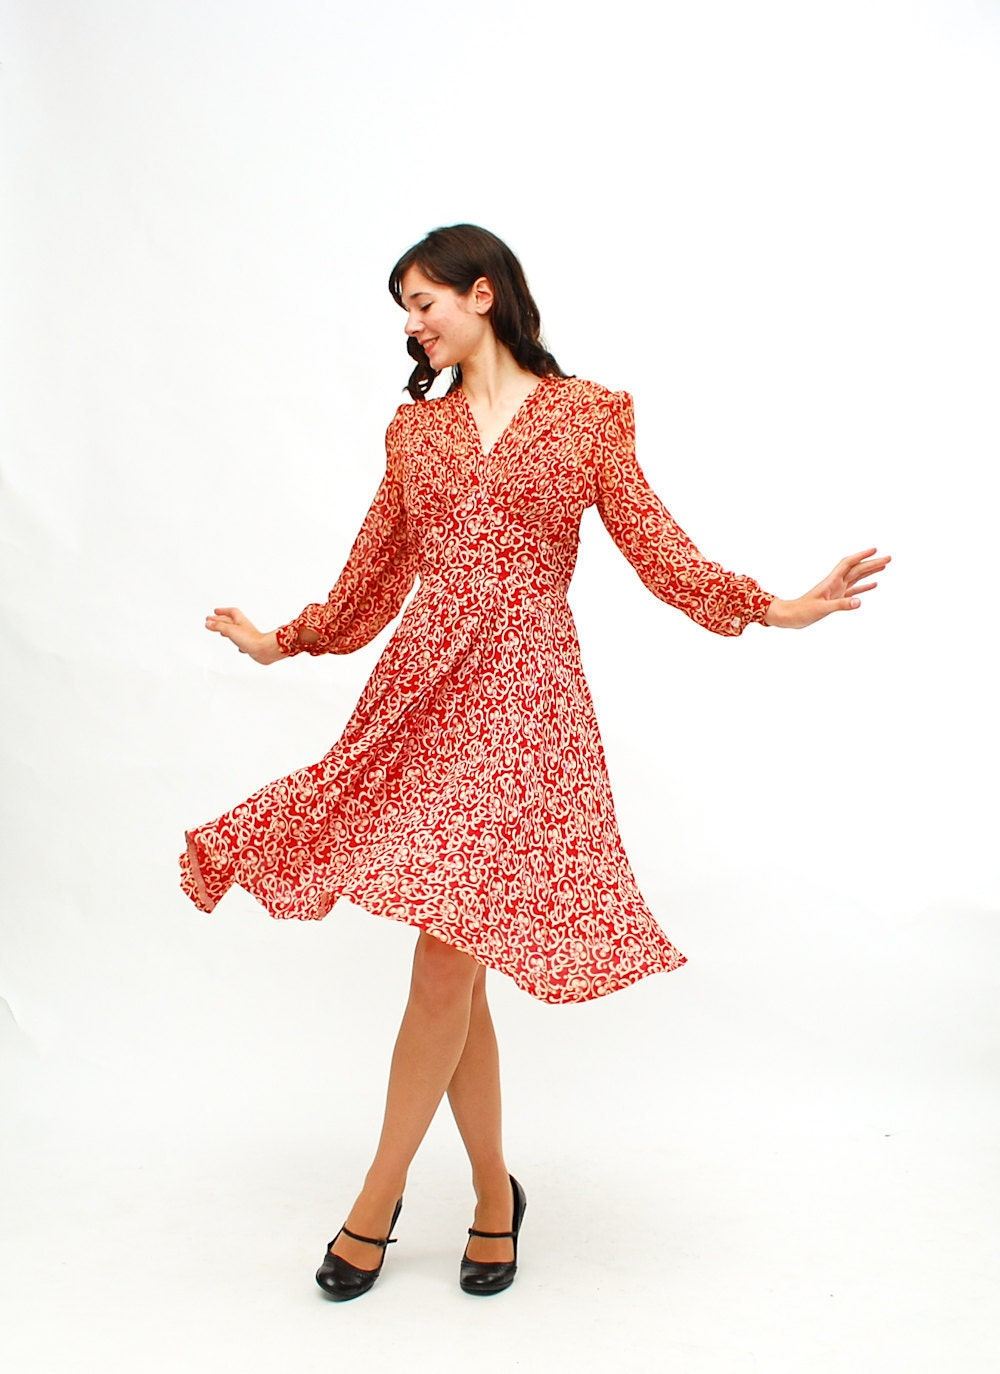 Vintage 1940s Swing Dress 40s Novelty Print Dress Red and